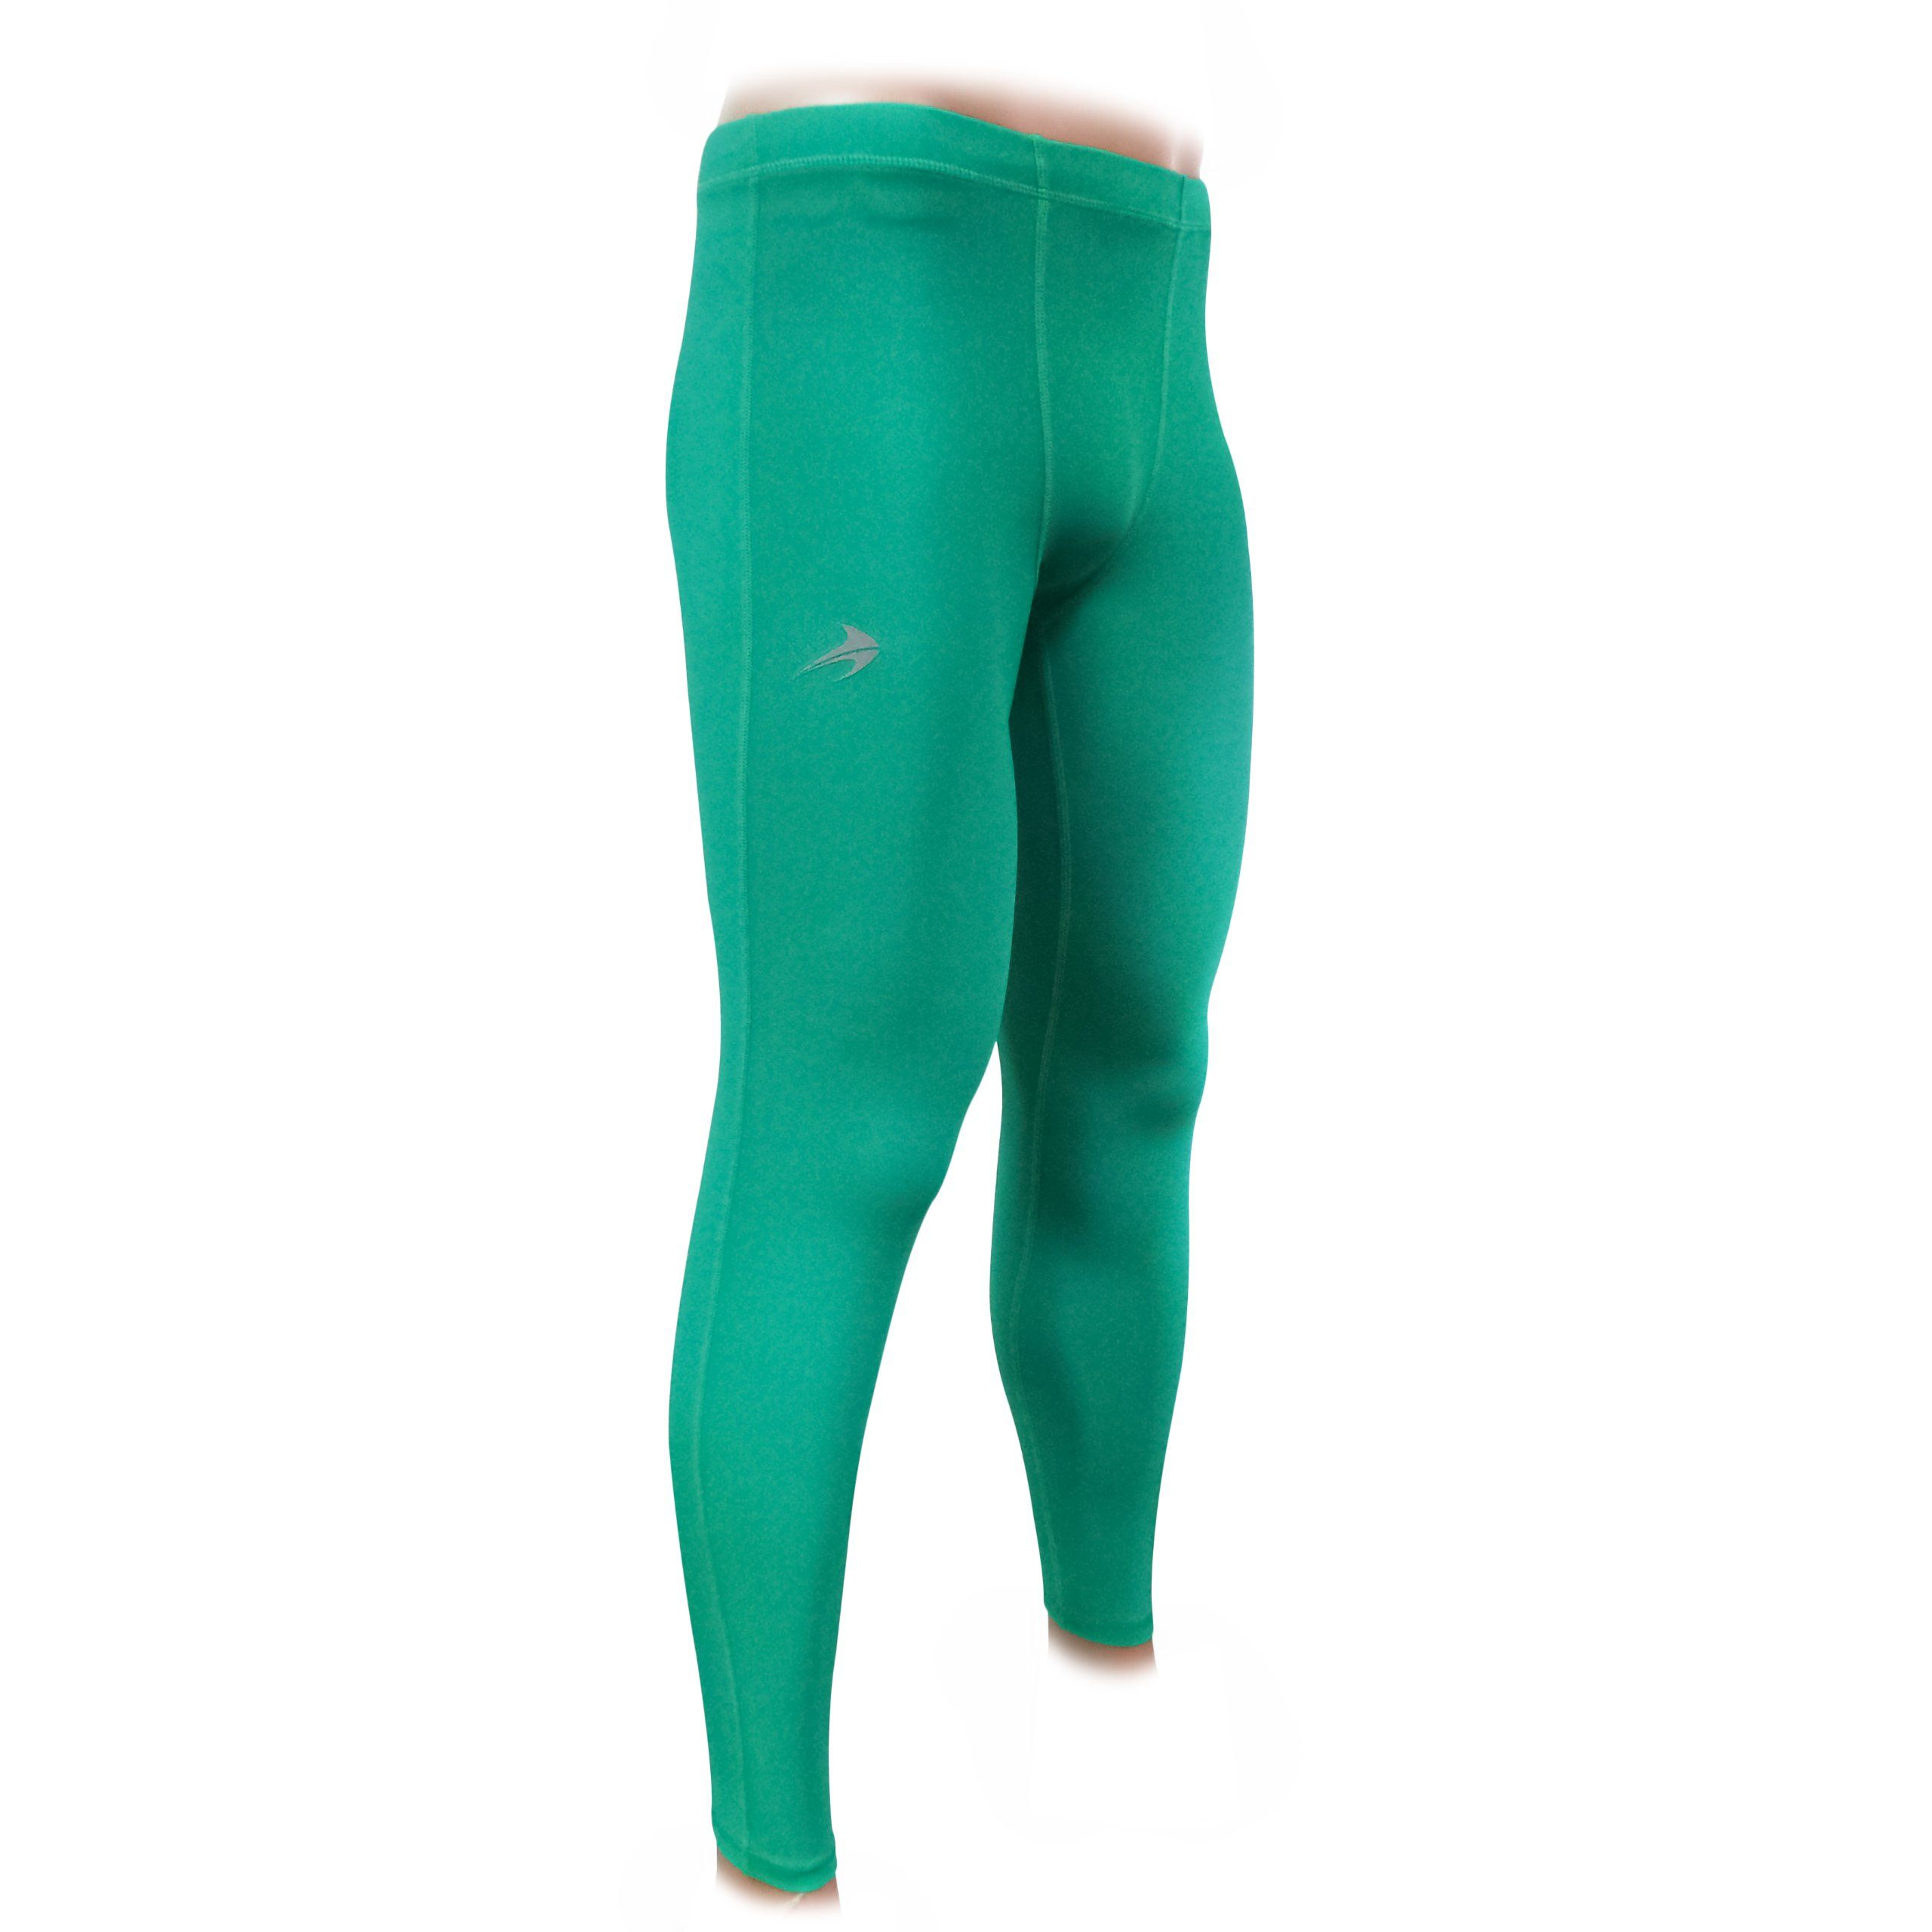 e65dbf9135 Compression Pants - Men's Tights Base Layer Leggings, Best Running/ Workout  (Green/ M)